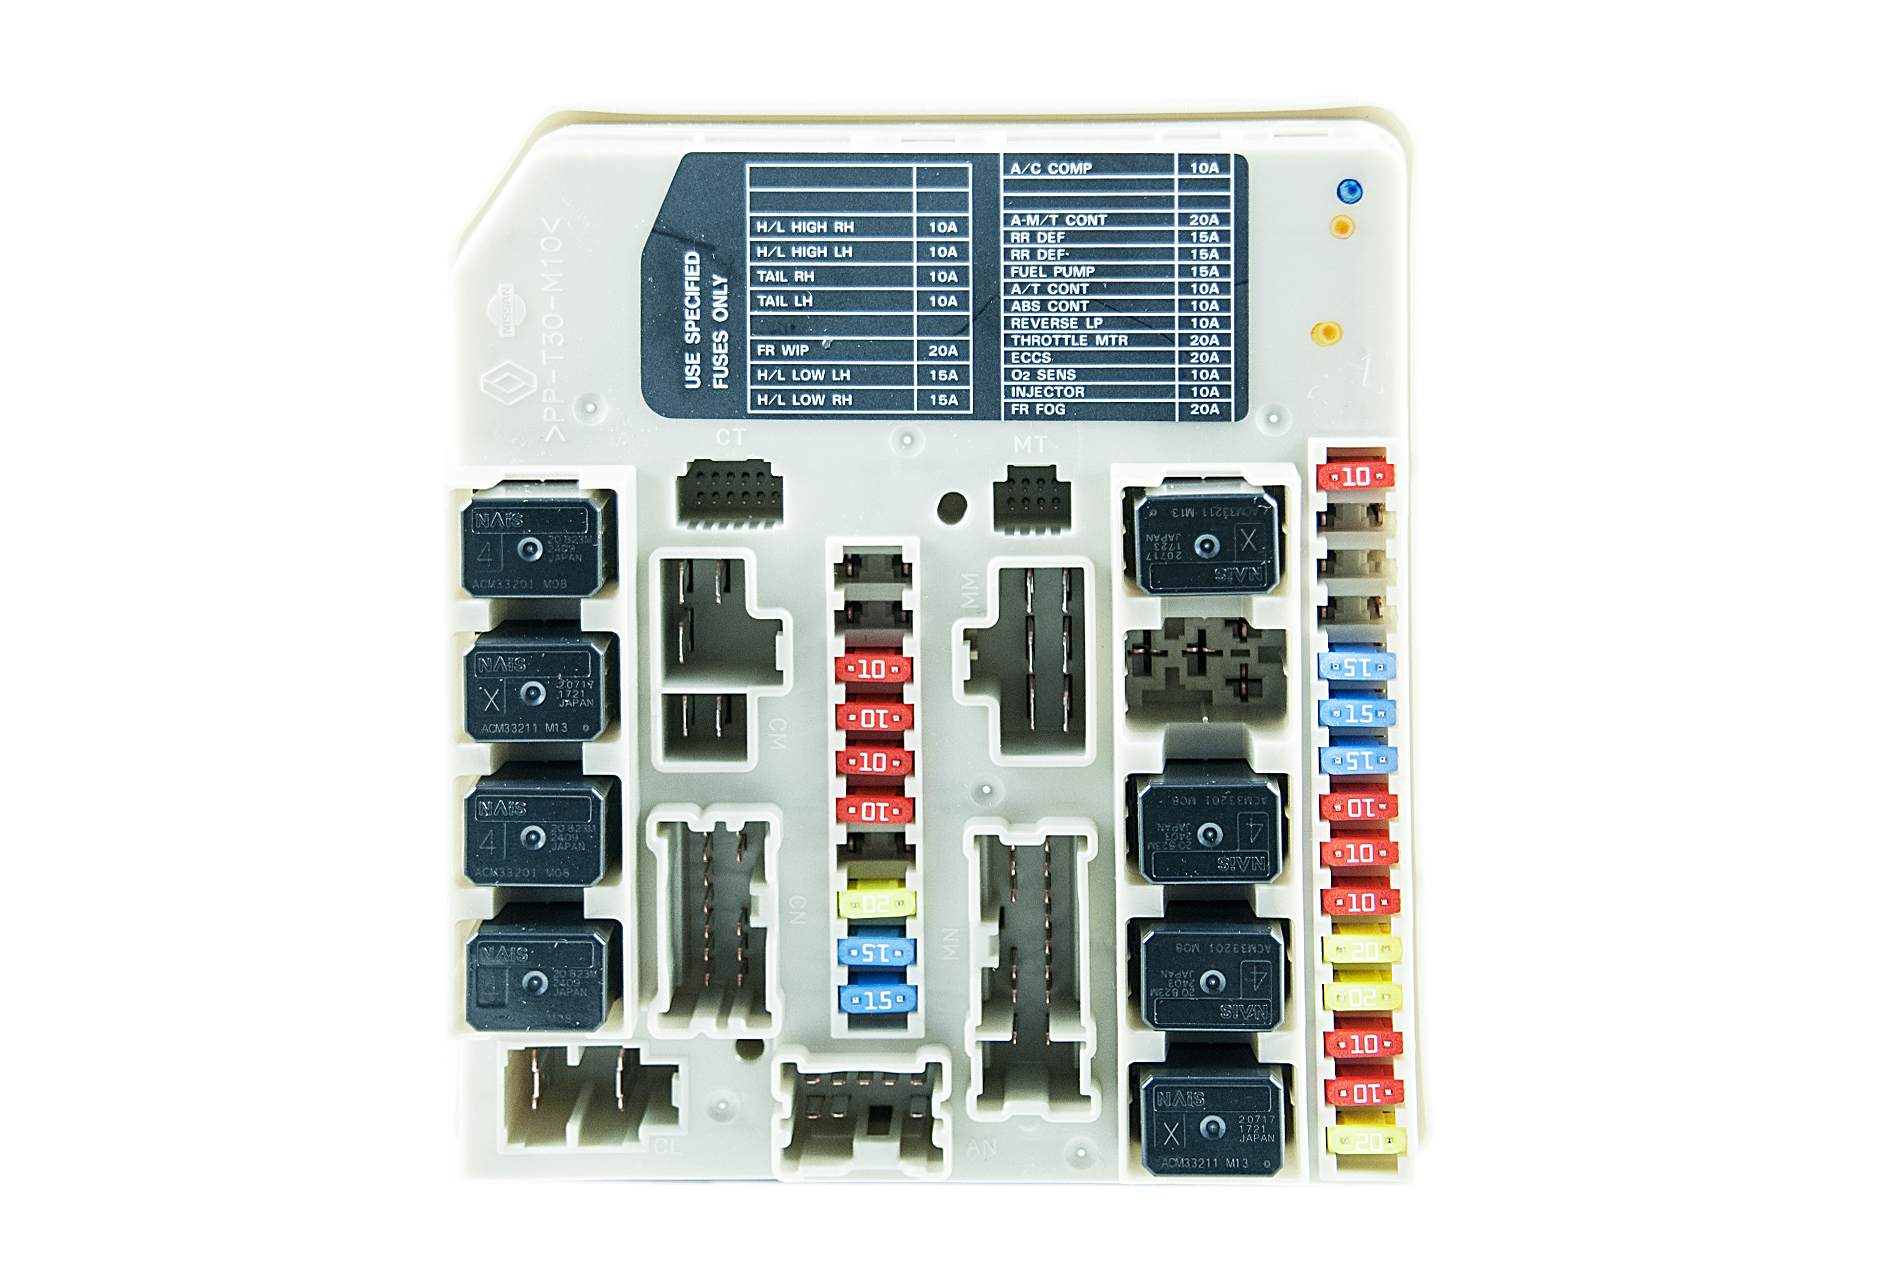 284B7AX61Aa nissan nv200 fuse box nissan quest fuse box \u2022 free wiring diagrams nissan nv200 fuse box diagram at gsmportal.co